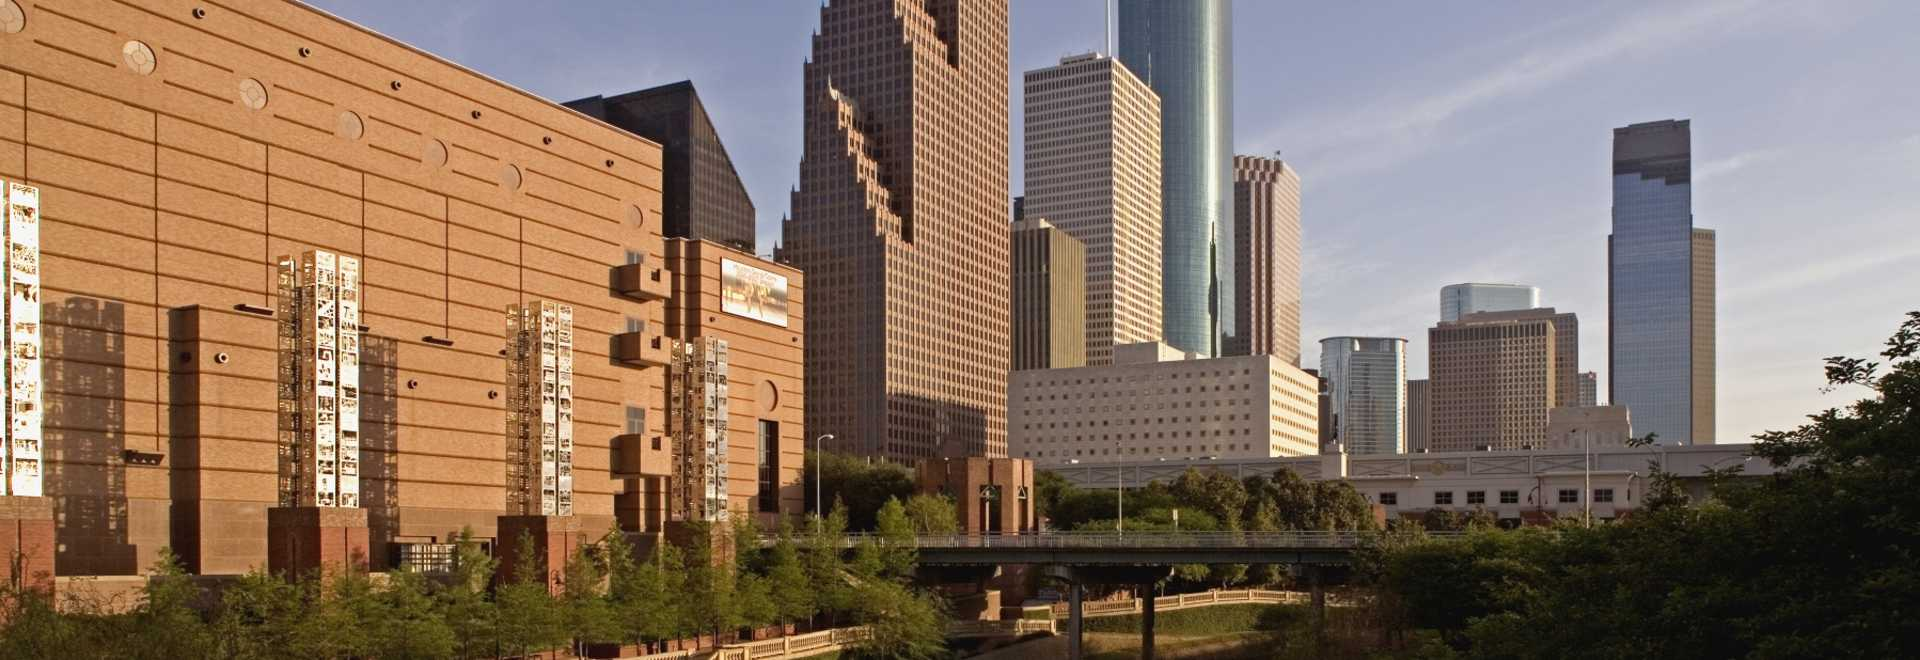 Houston Maps  Transportation Houston Meetings - Map of houston hotels downtown